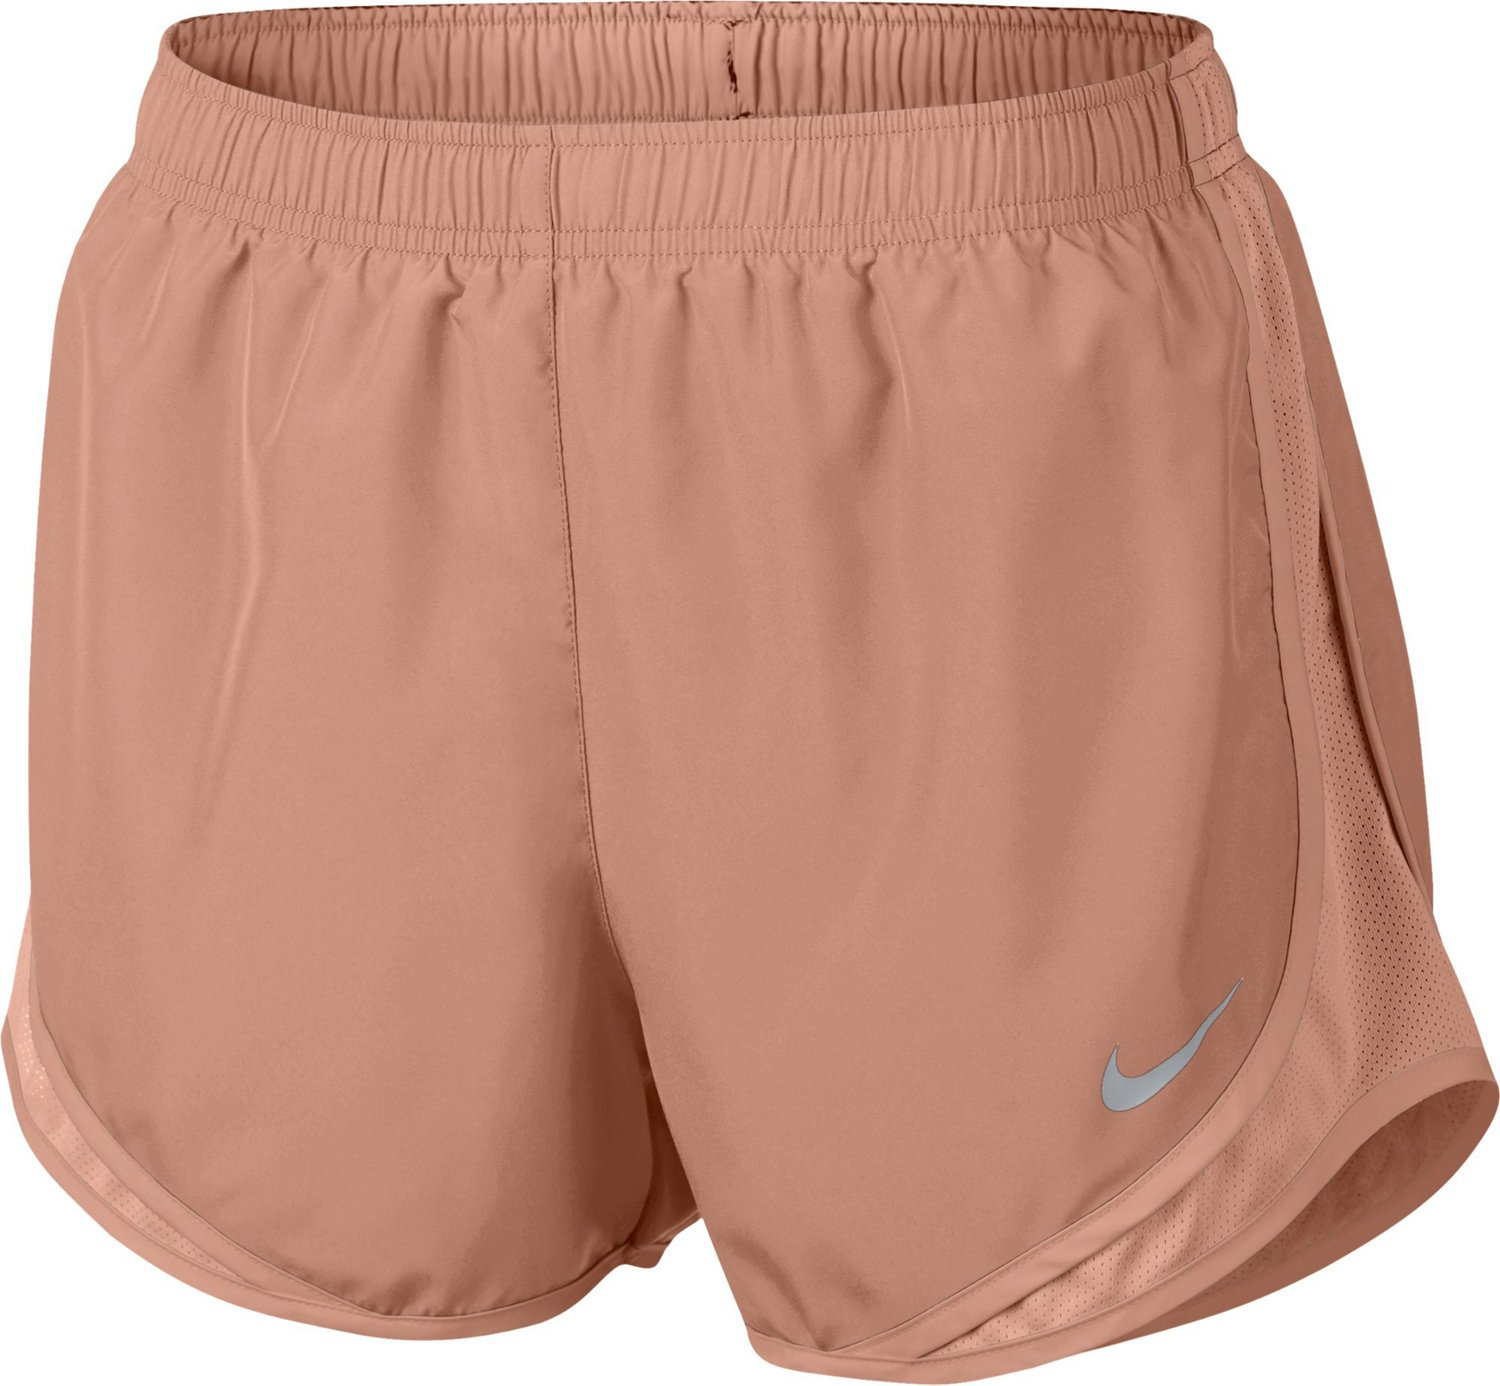 59d708bd1 Display product reviews for Nike Women's Dry Tempo Shorts